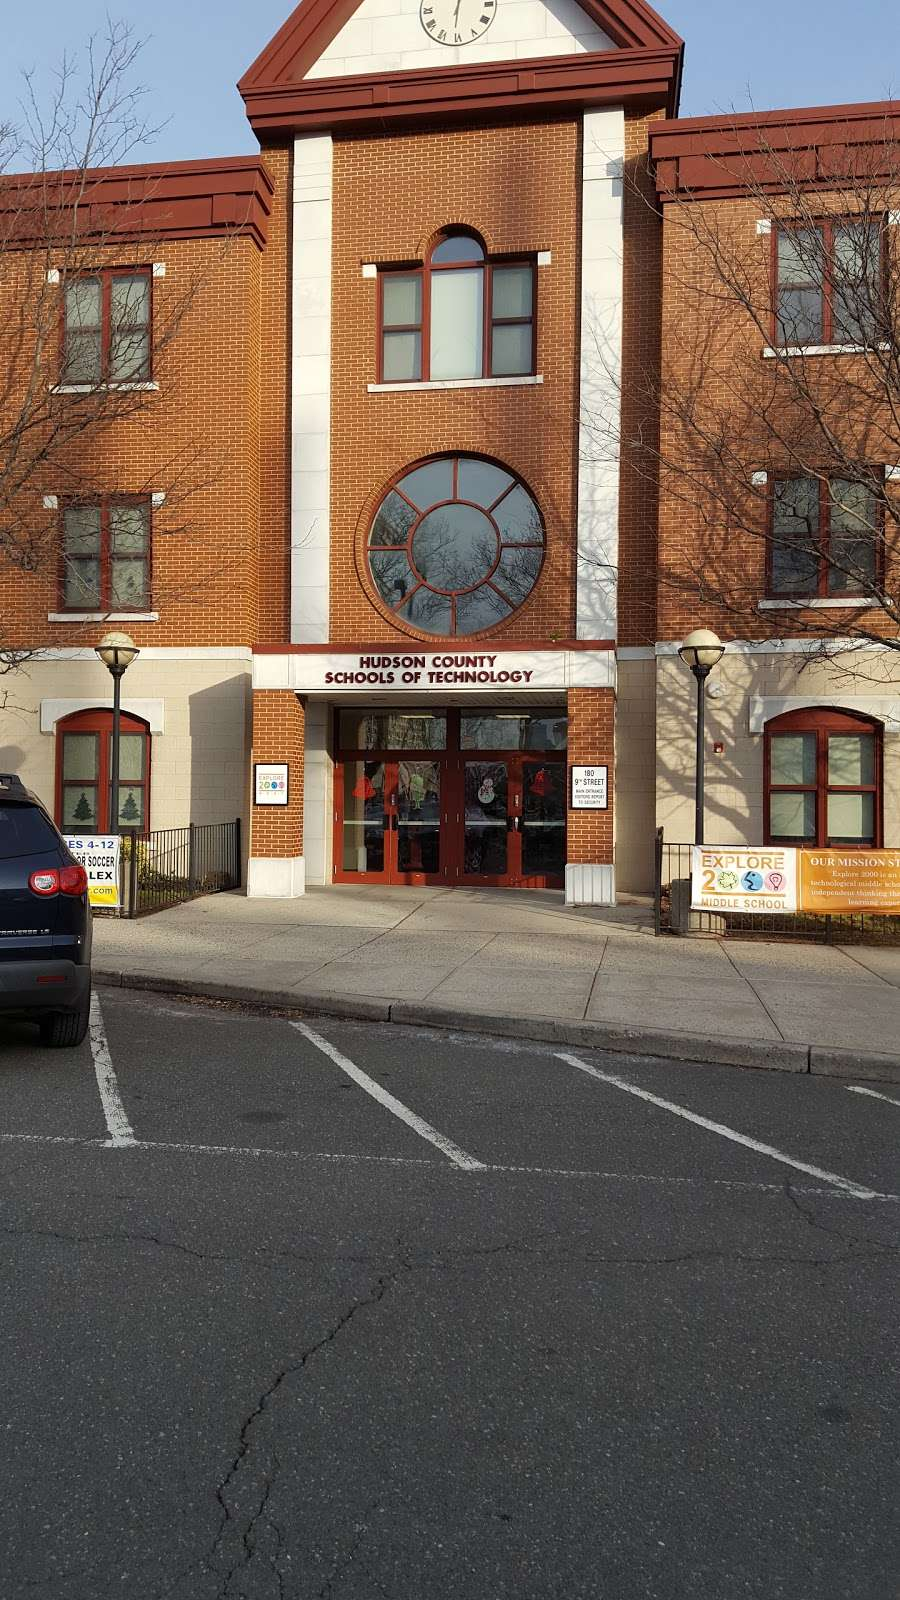 Hudson County Schools Of Thechnology - school  | Photo 4 of 9 | Address: 180 9th St, Jersey City, NJ 07302, USA